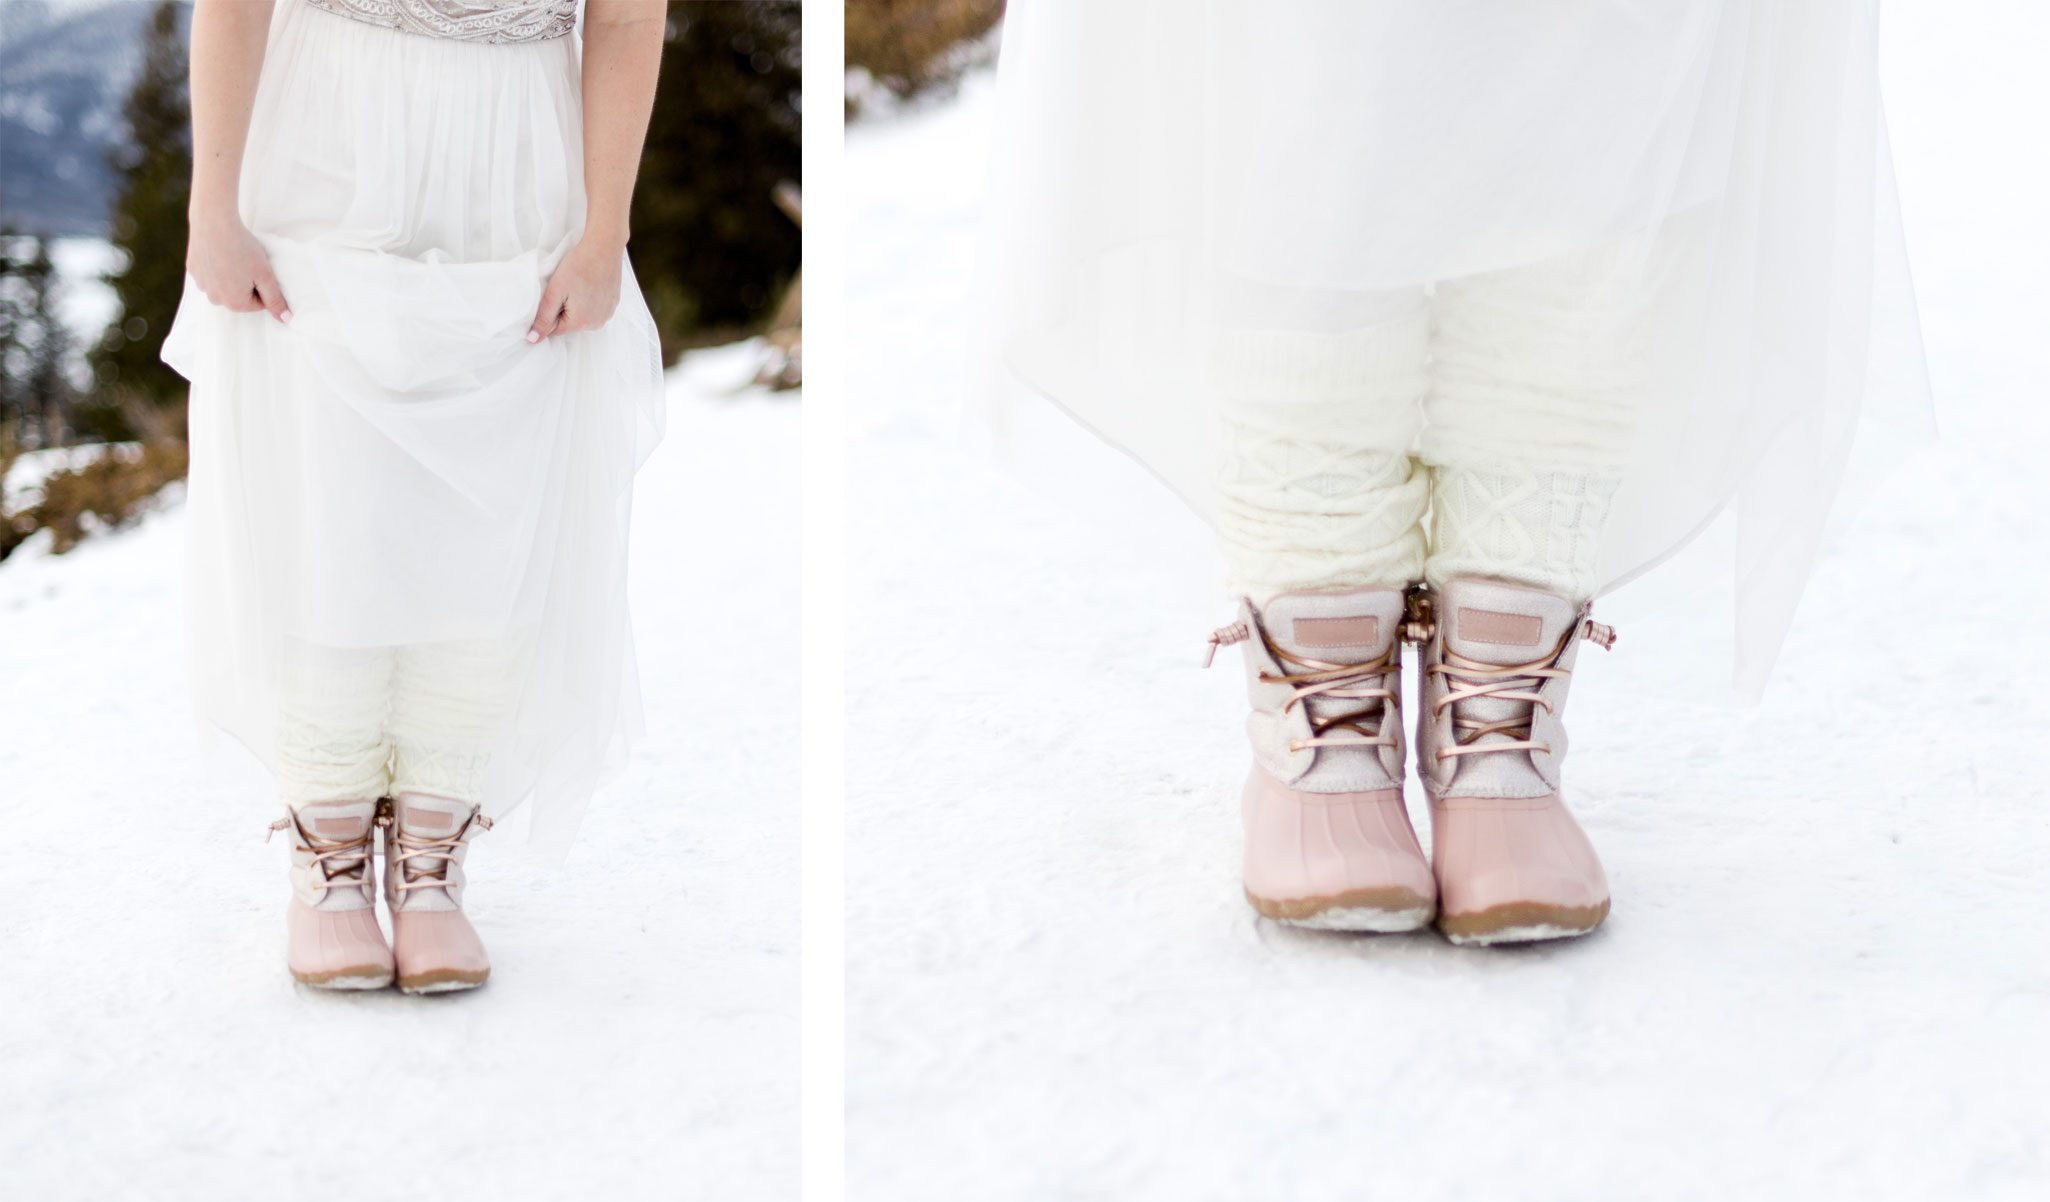 Pink wedding boots for an elopement in the snow